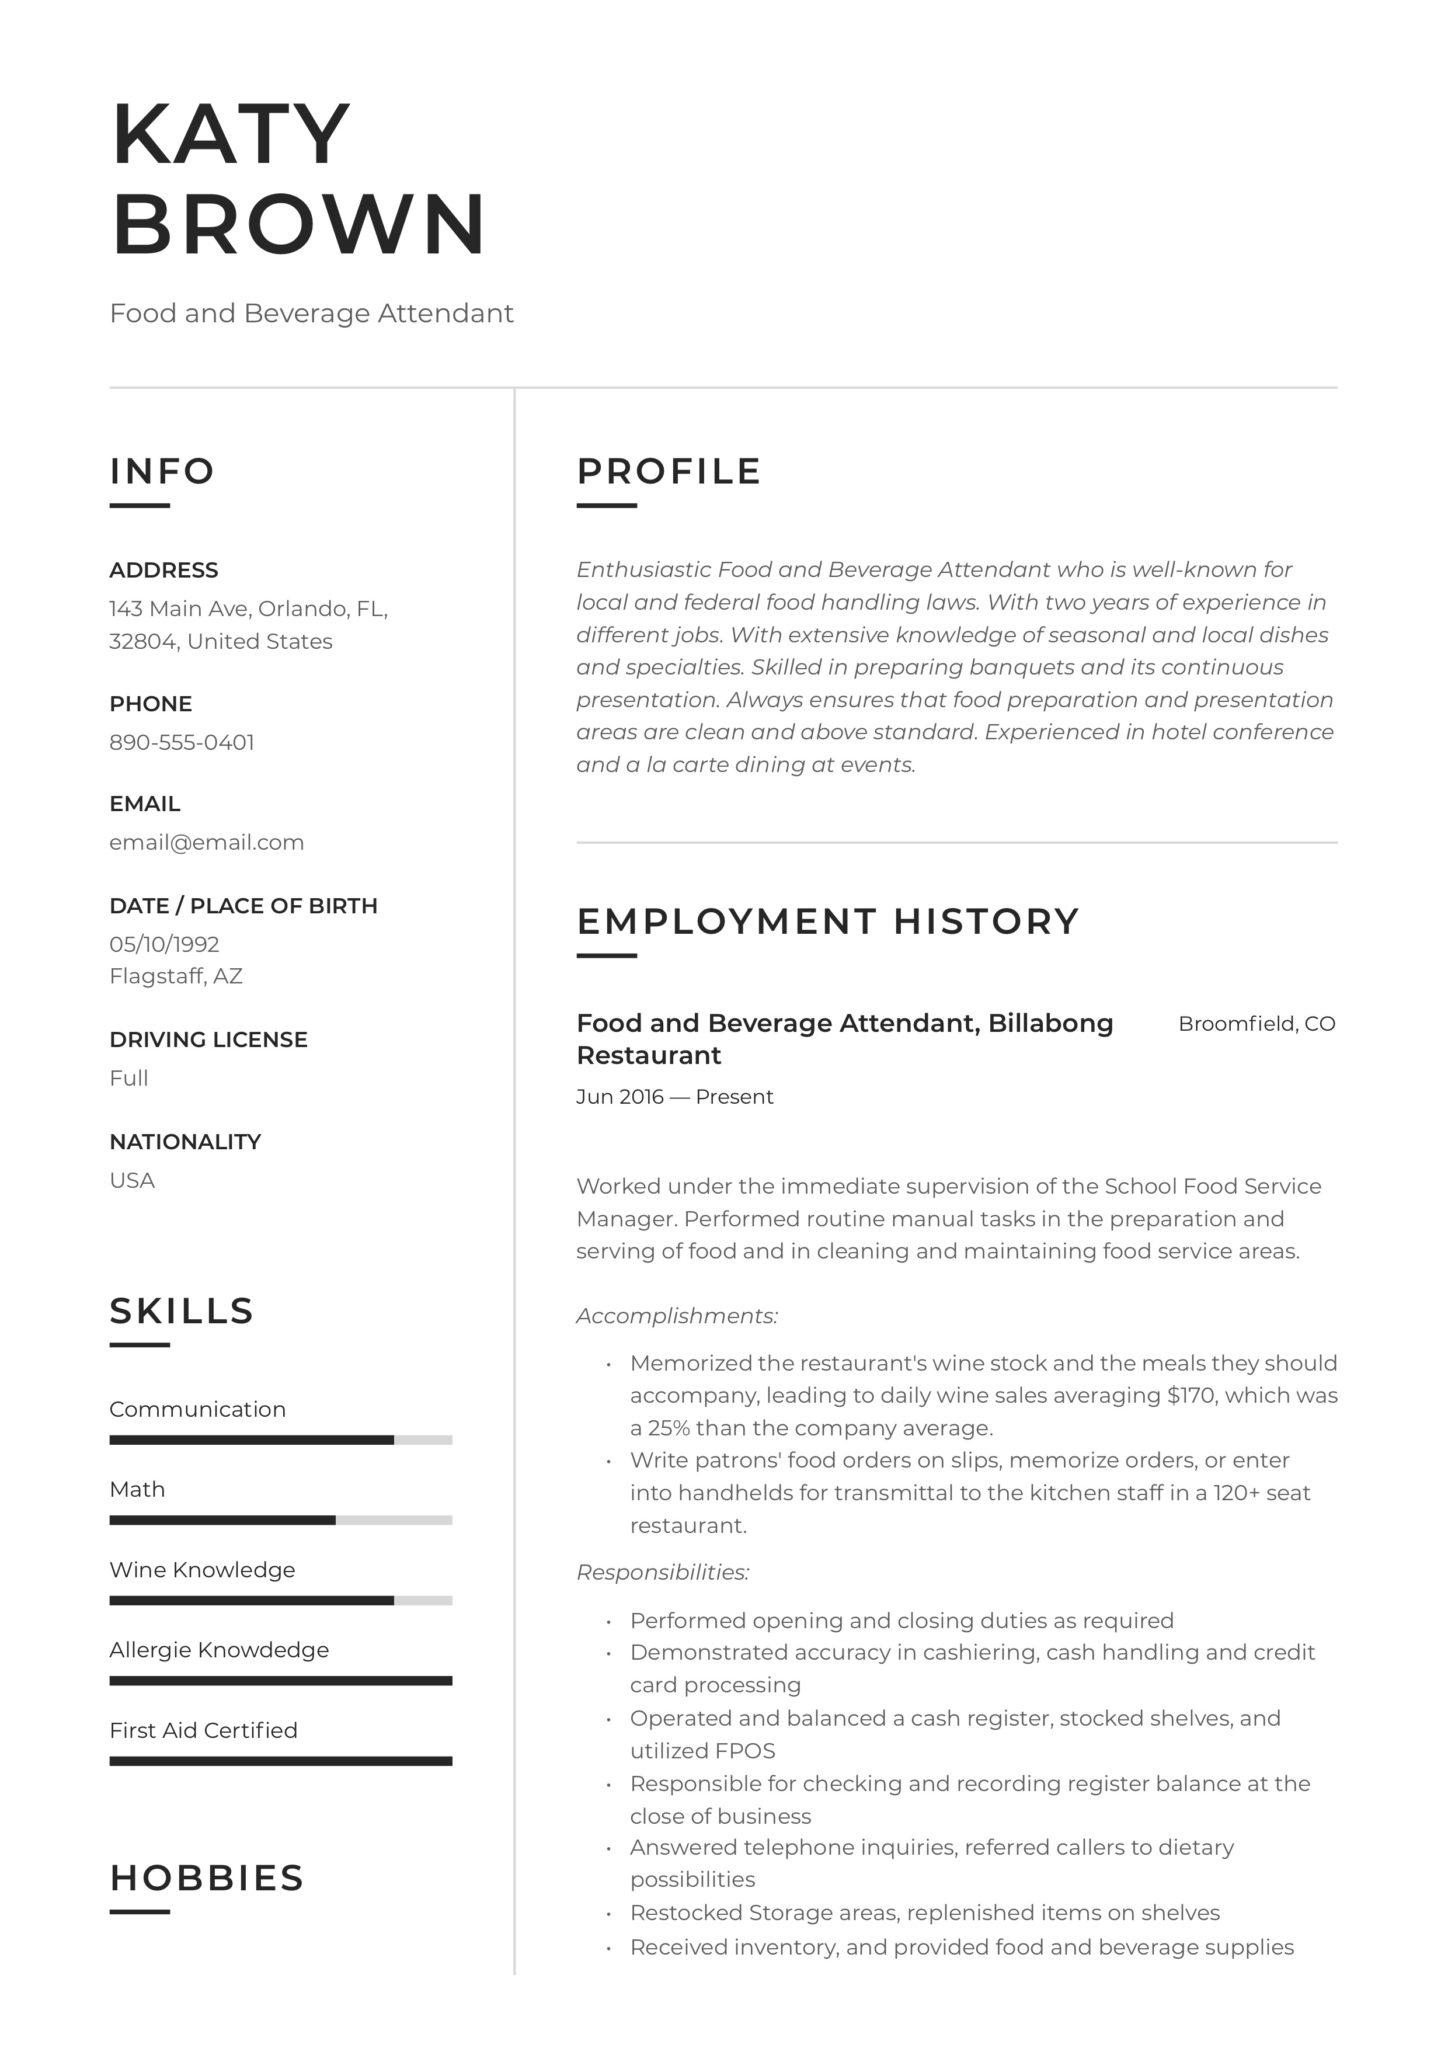 food and beverage attendant resume examples word pdf best format for hospitality industry Resume Best Resume Format For Hospitality Industry